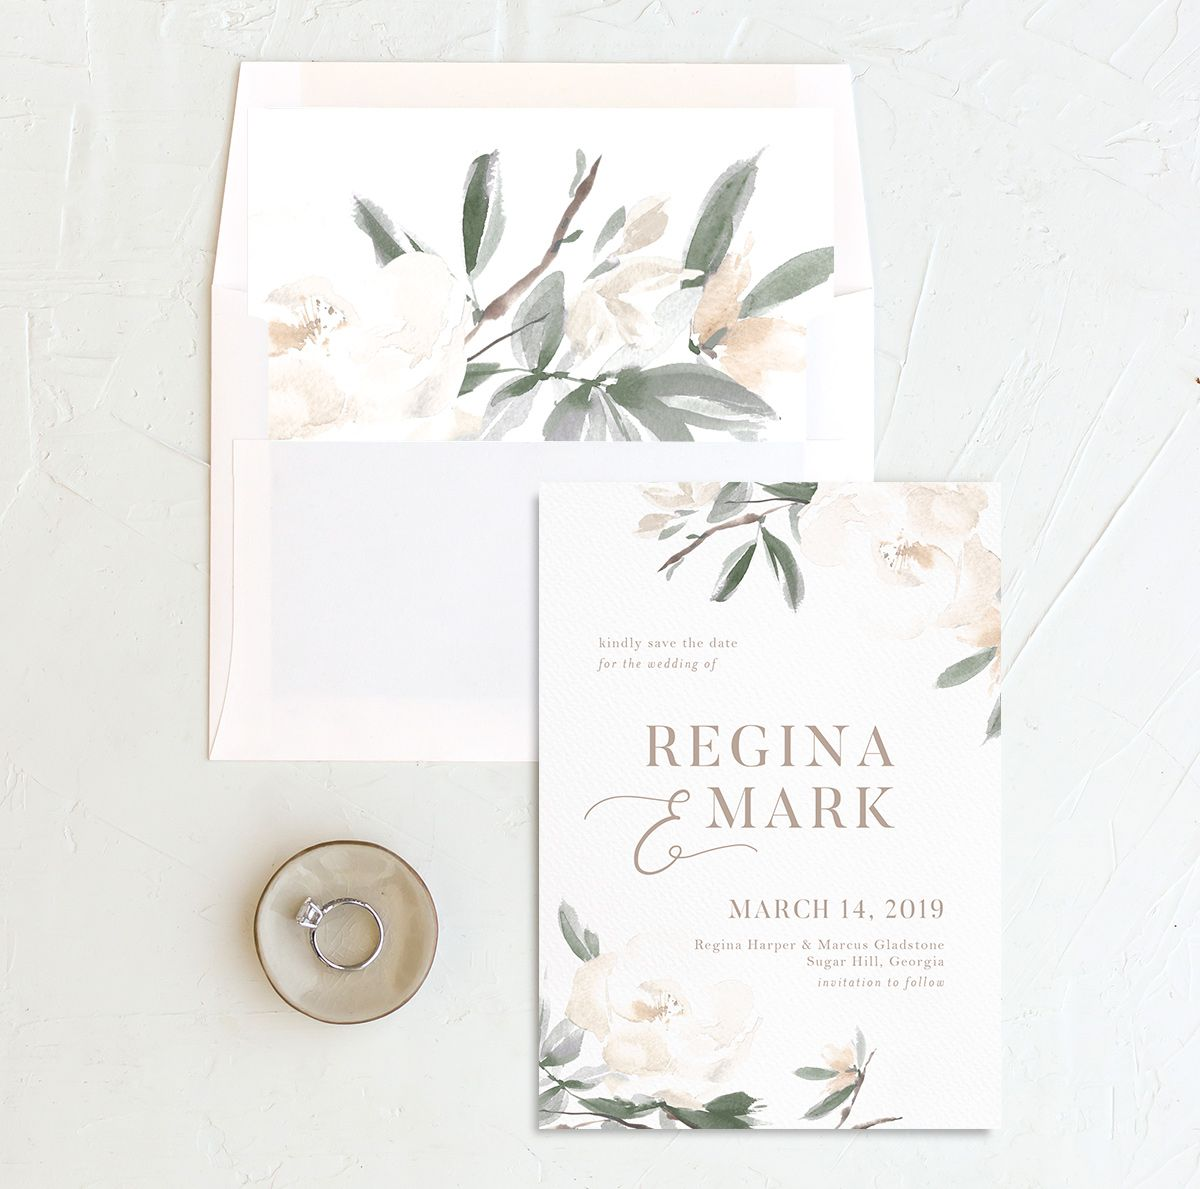 Elegant Garden wedding announcement in green